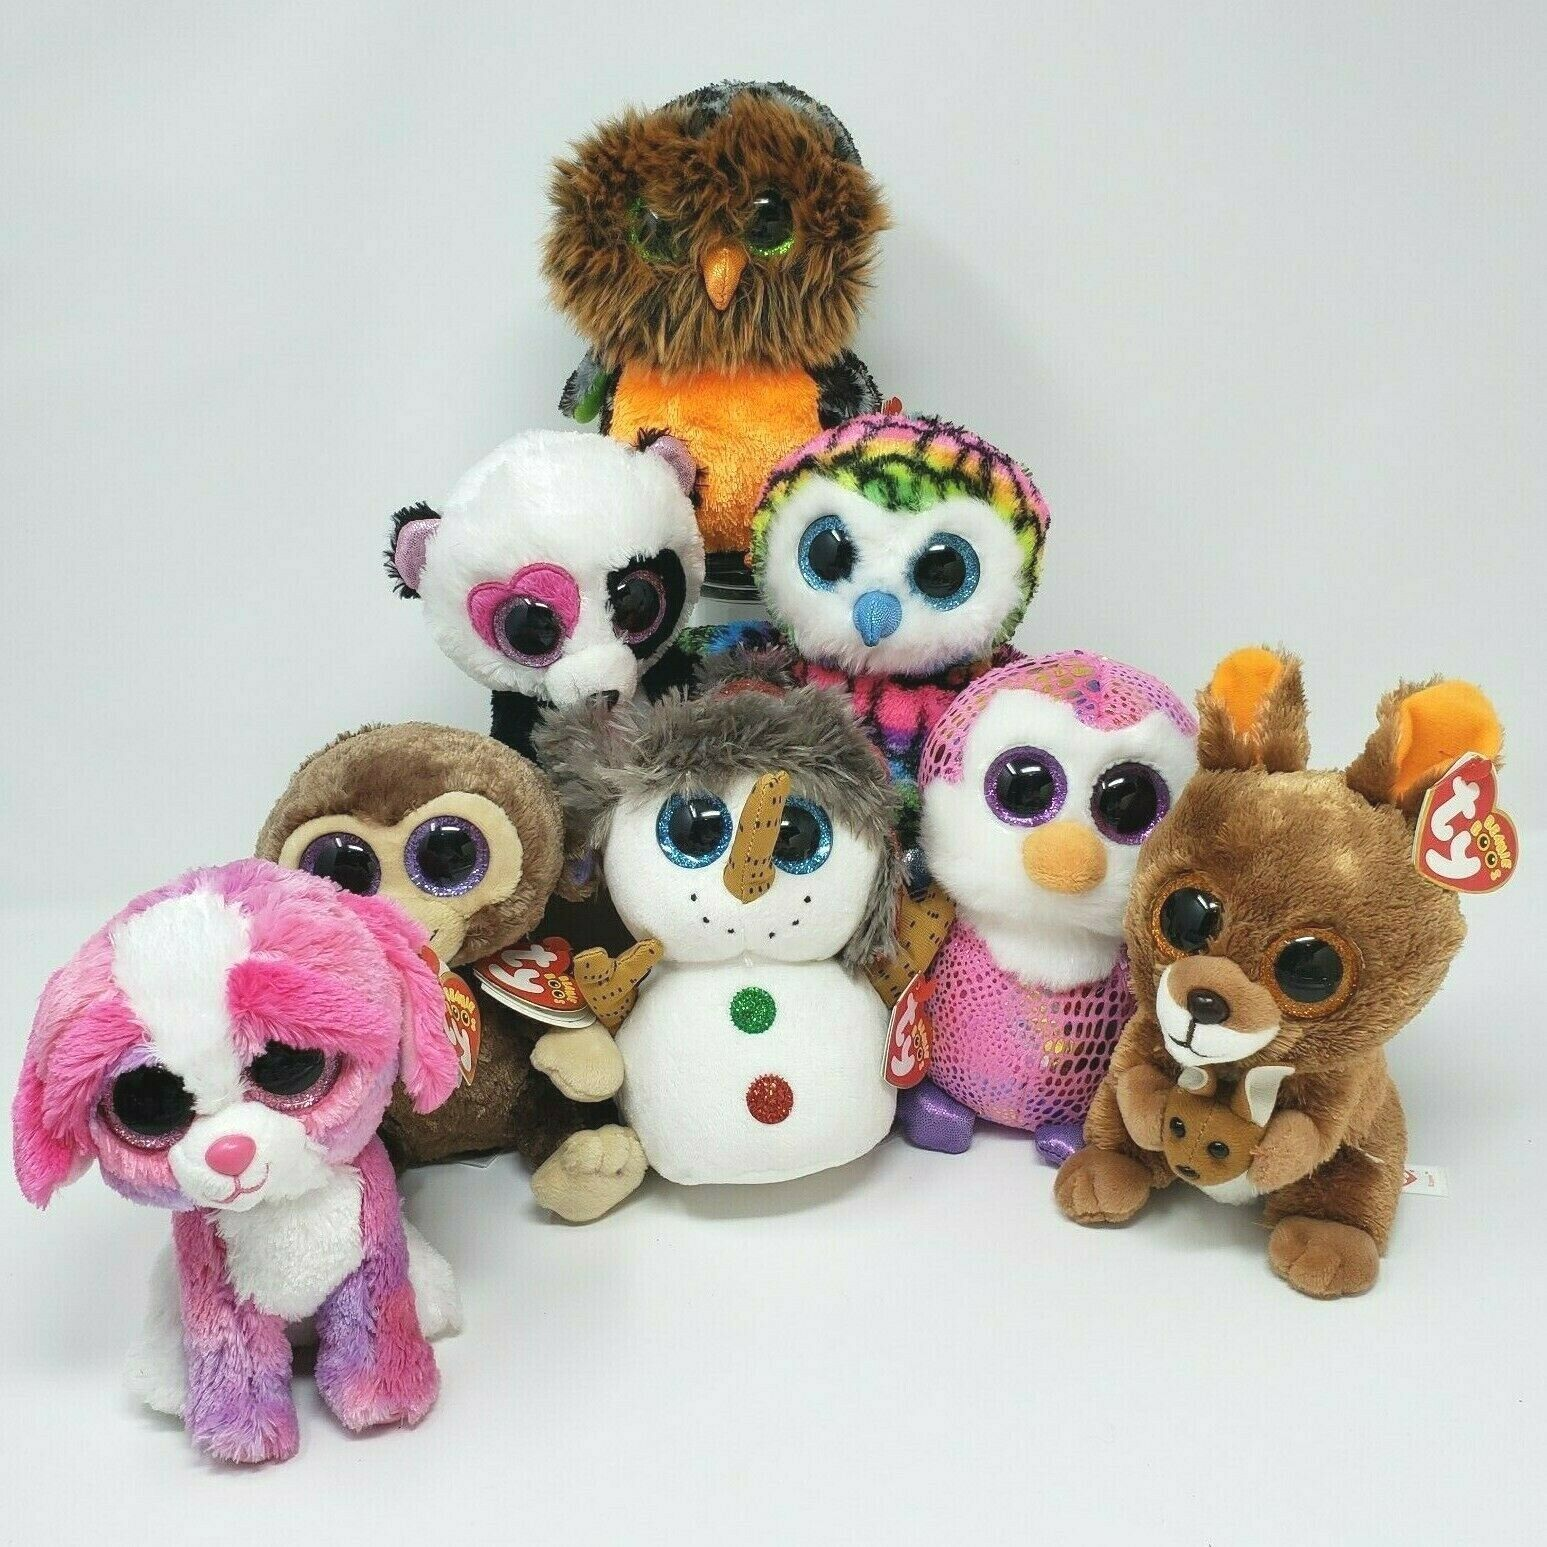 Primary image for LOT 8 TY BEANIE BOOS OWL SHERBET COCONUT BUTTONS KIPPER STUFFED ANIMAL PLUSH TOY